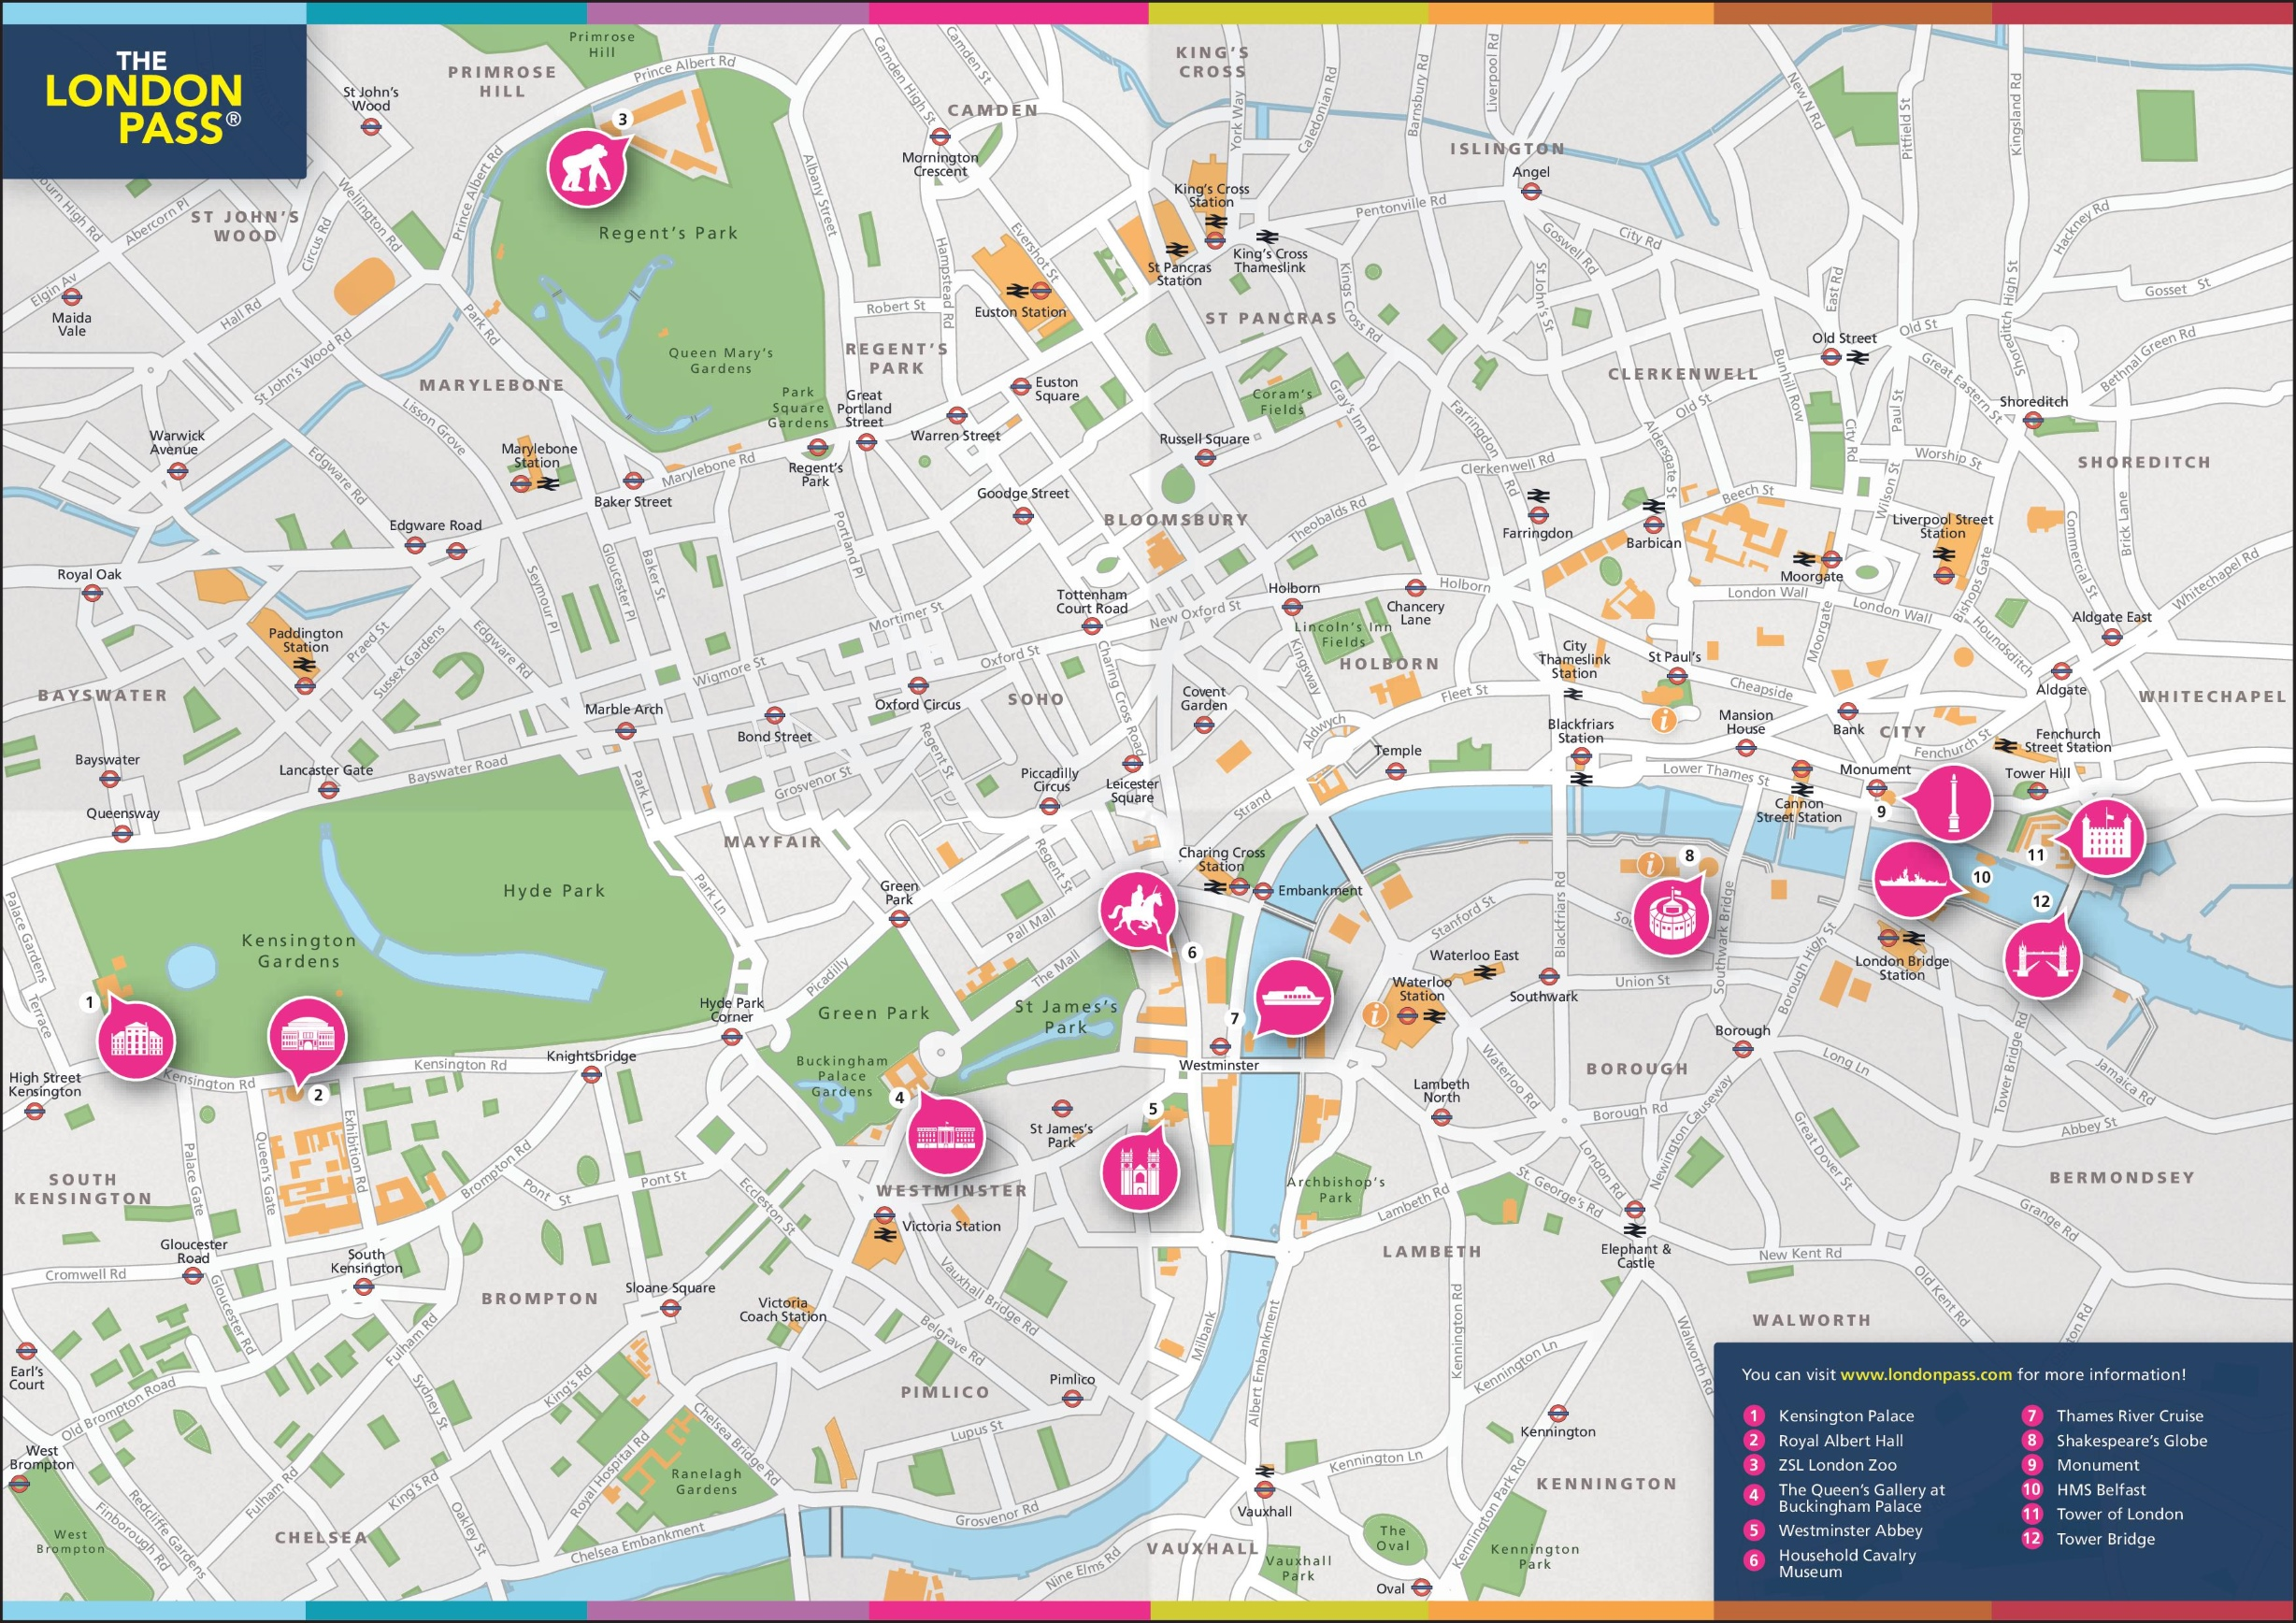 London Pass Attractions Map.London Pass Map